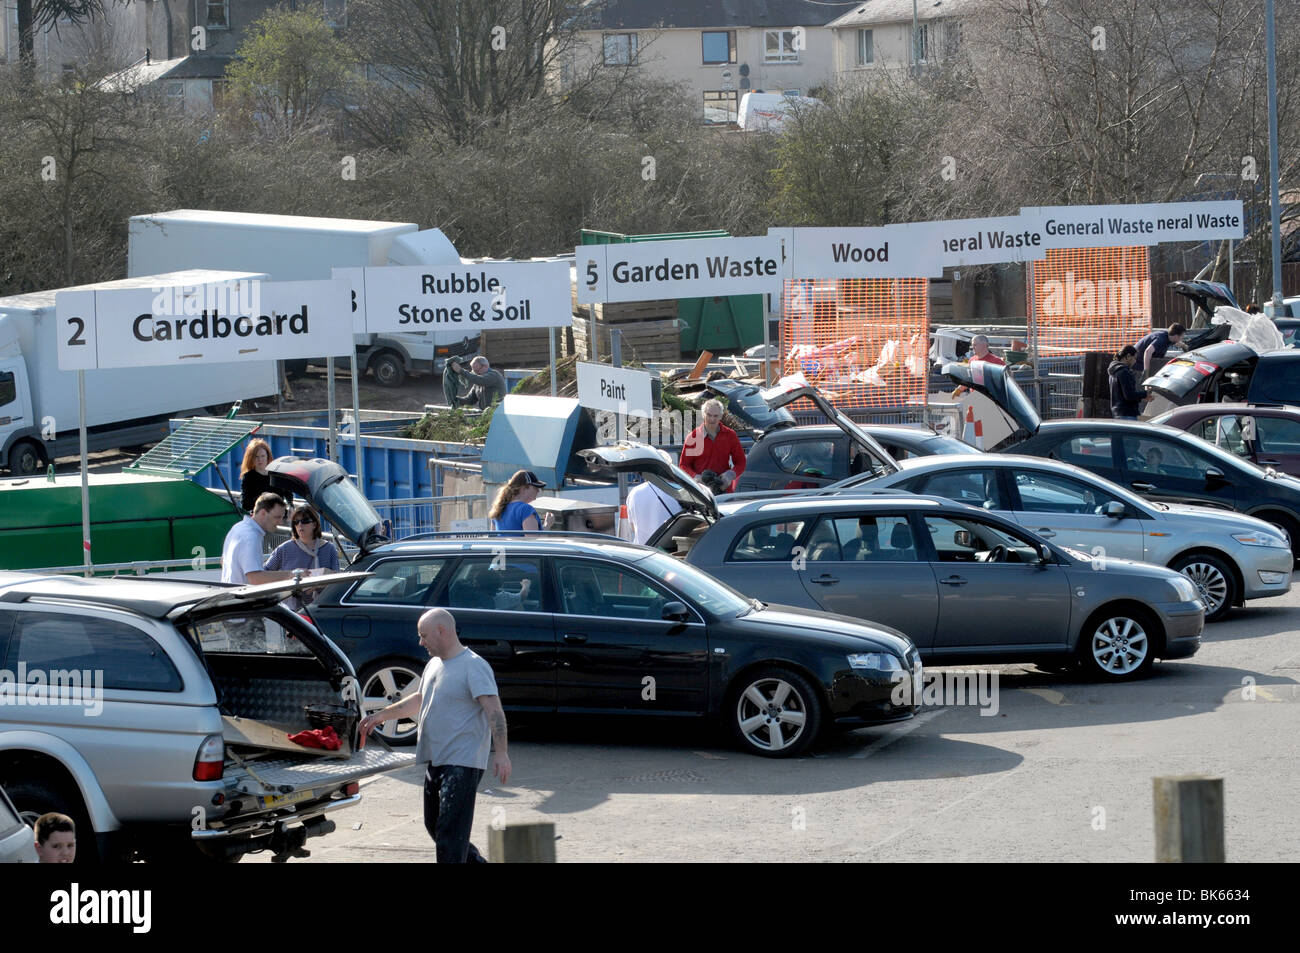 People recyling rubbish and waste at council recycling centre - Stock Image